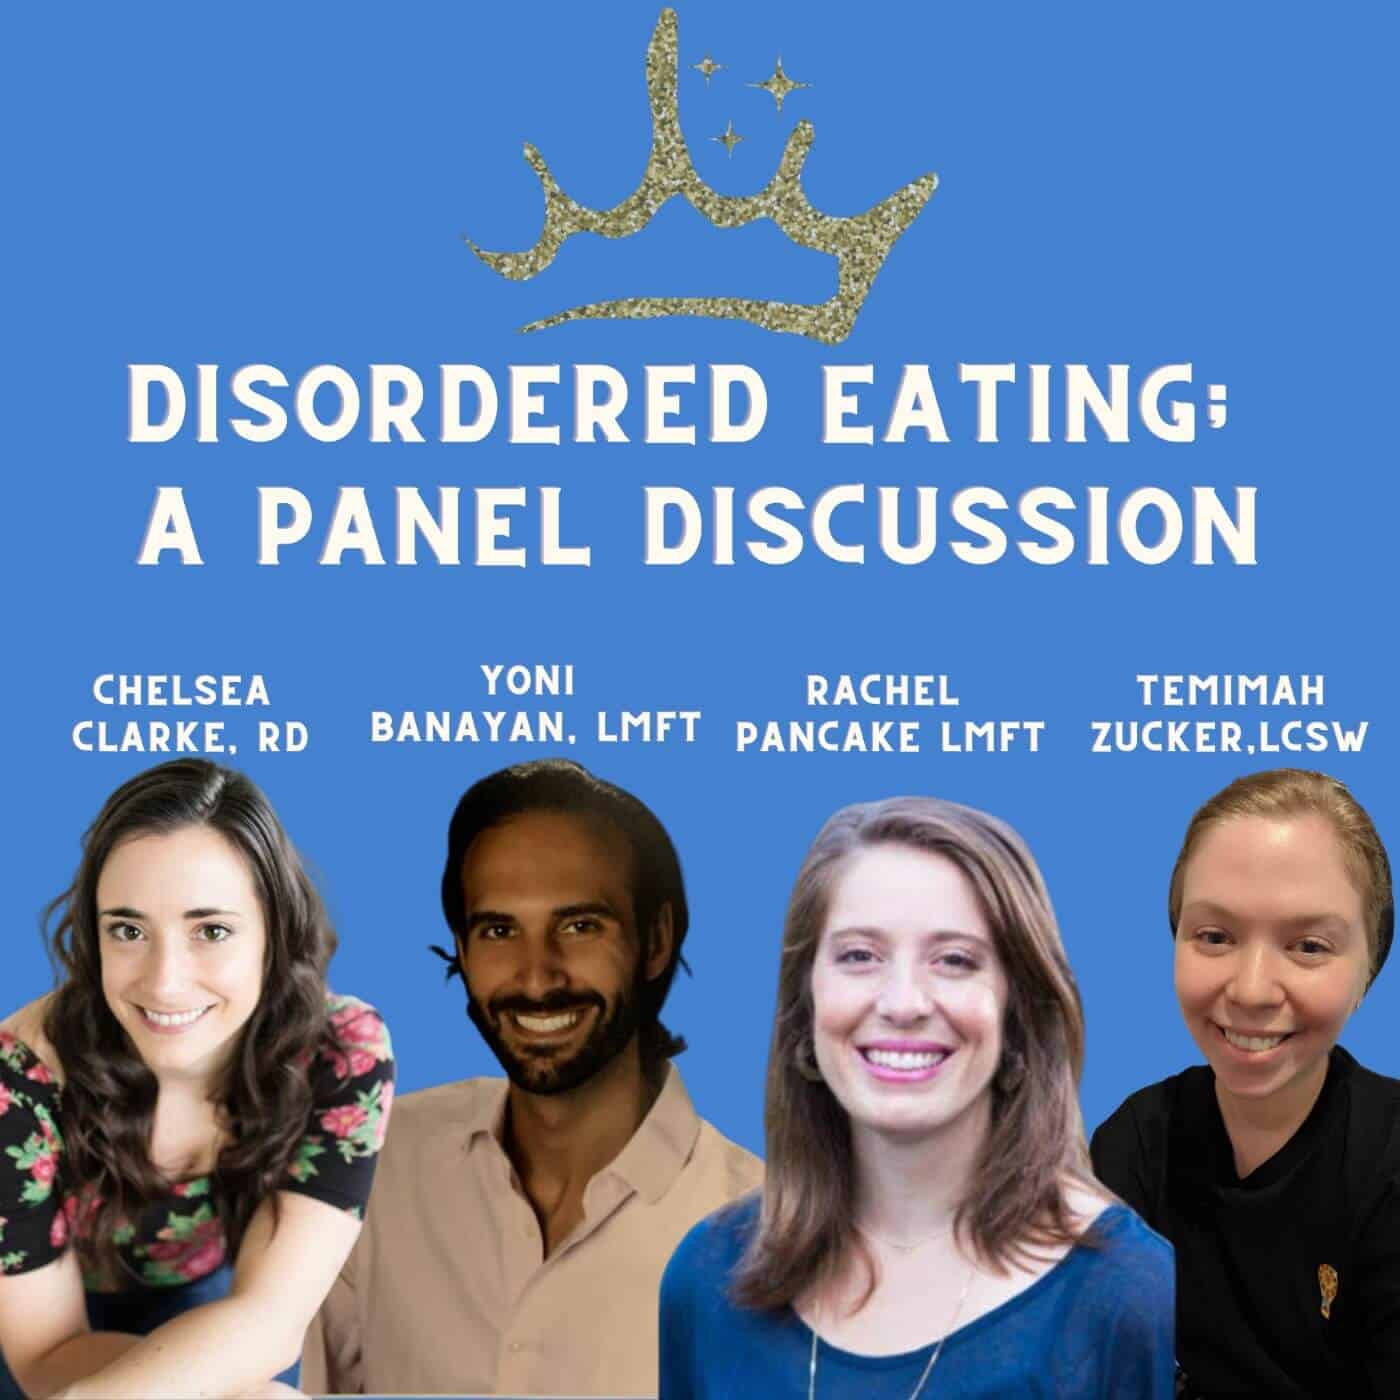 Ep. 47: Disordered Eating; A Panel Discussion with Chelsea Clarke, RD, Yoni Banayan, LMFT, Temimah Zucker, LCSW and Rachel Pancake, LMFT